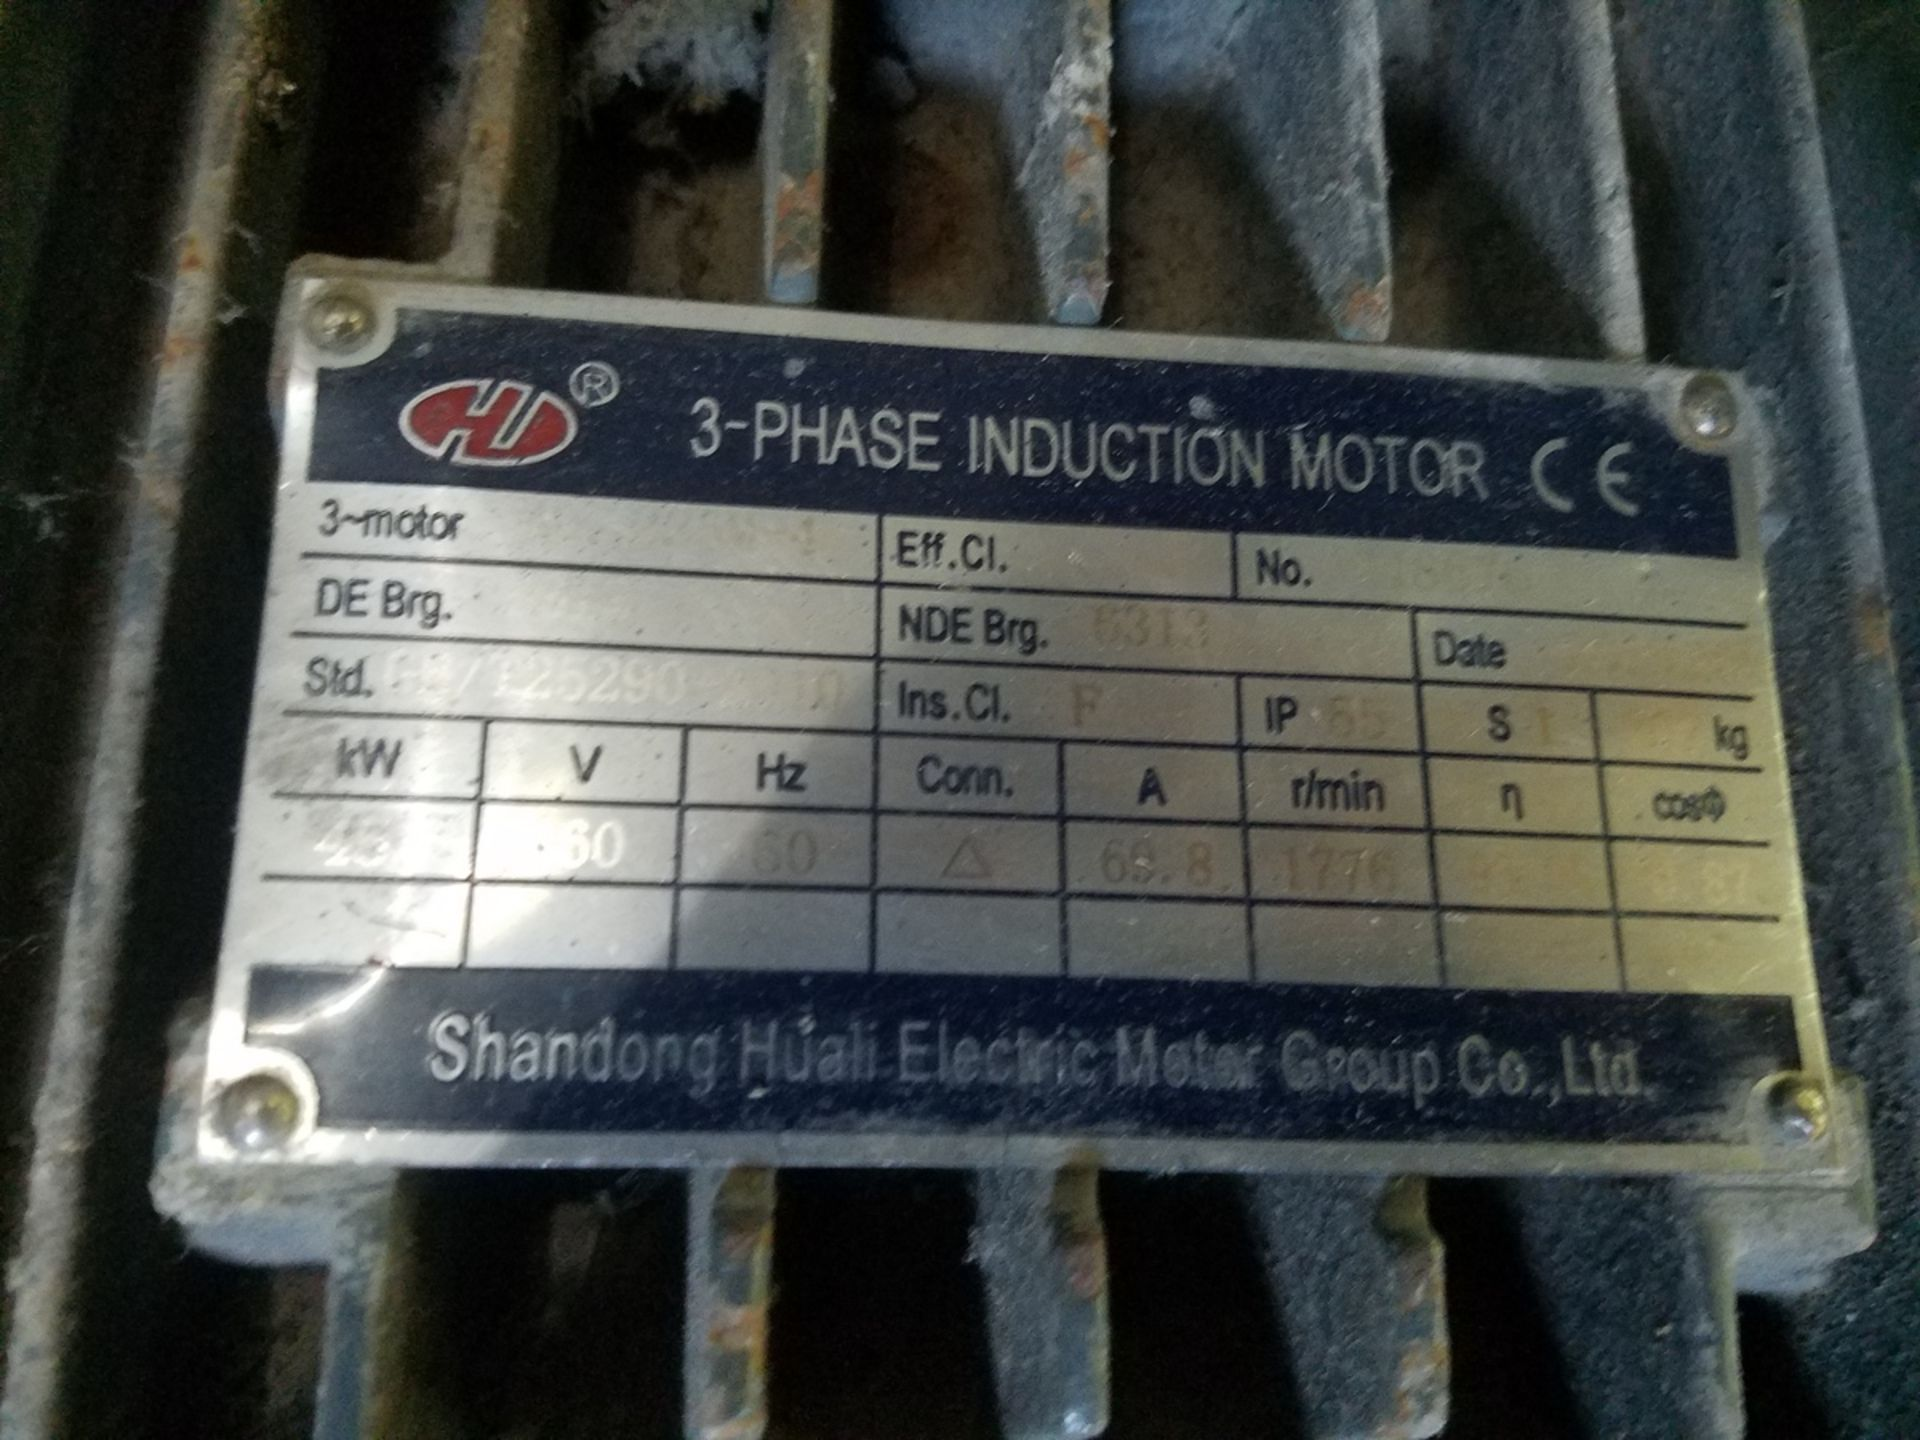 Shandong 45 KW Electric Motor | Rig Fee: $50 - Image 2 of 2